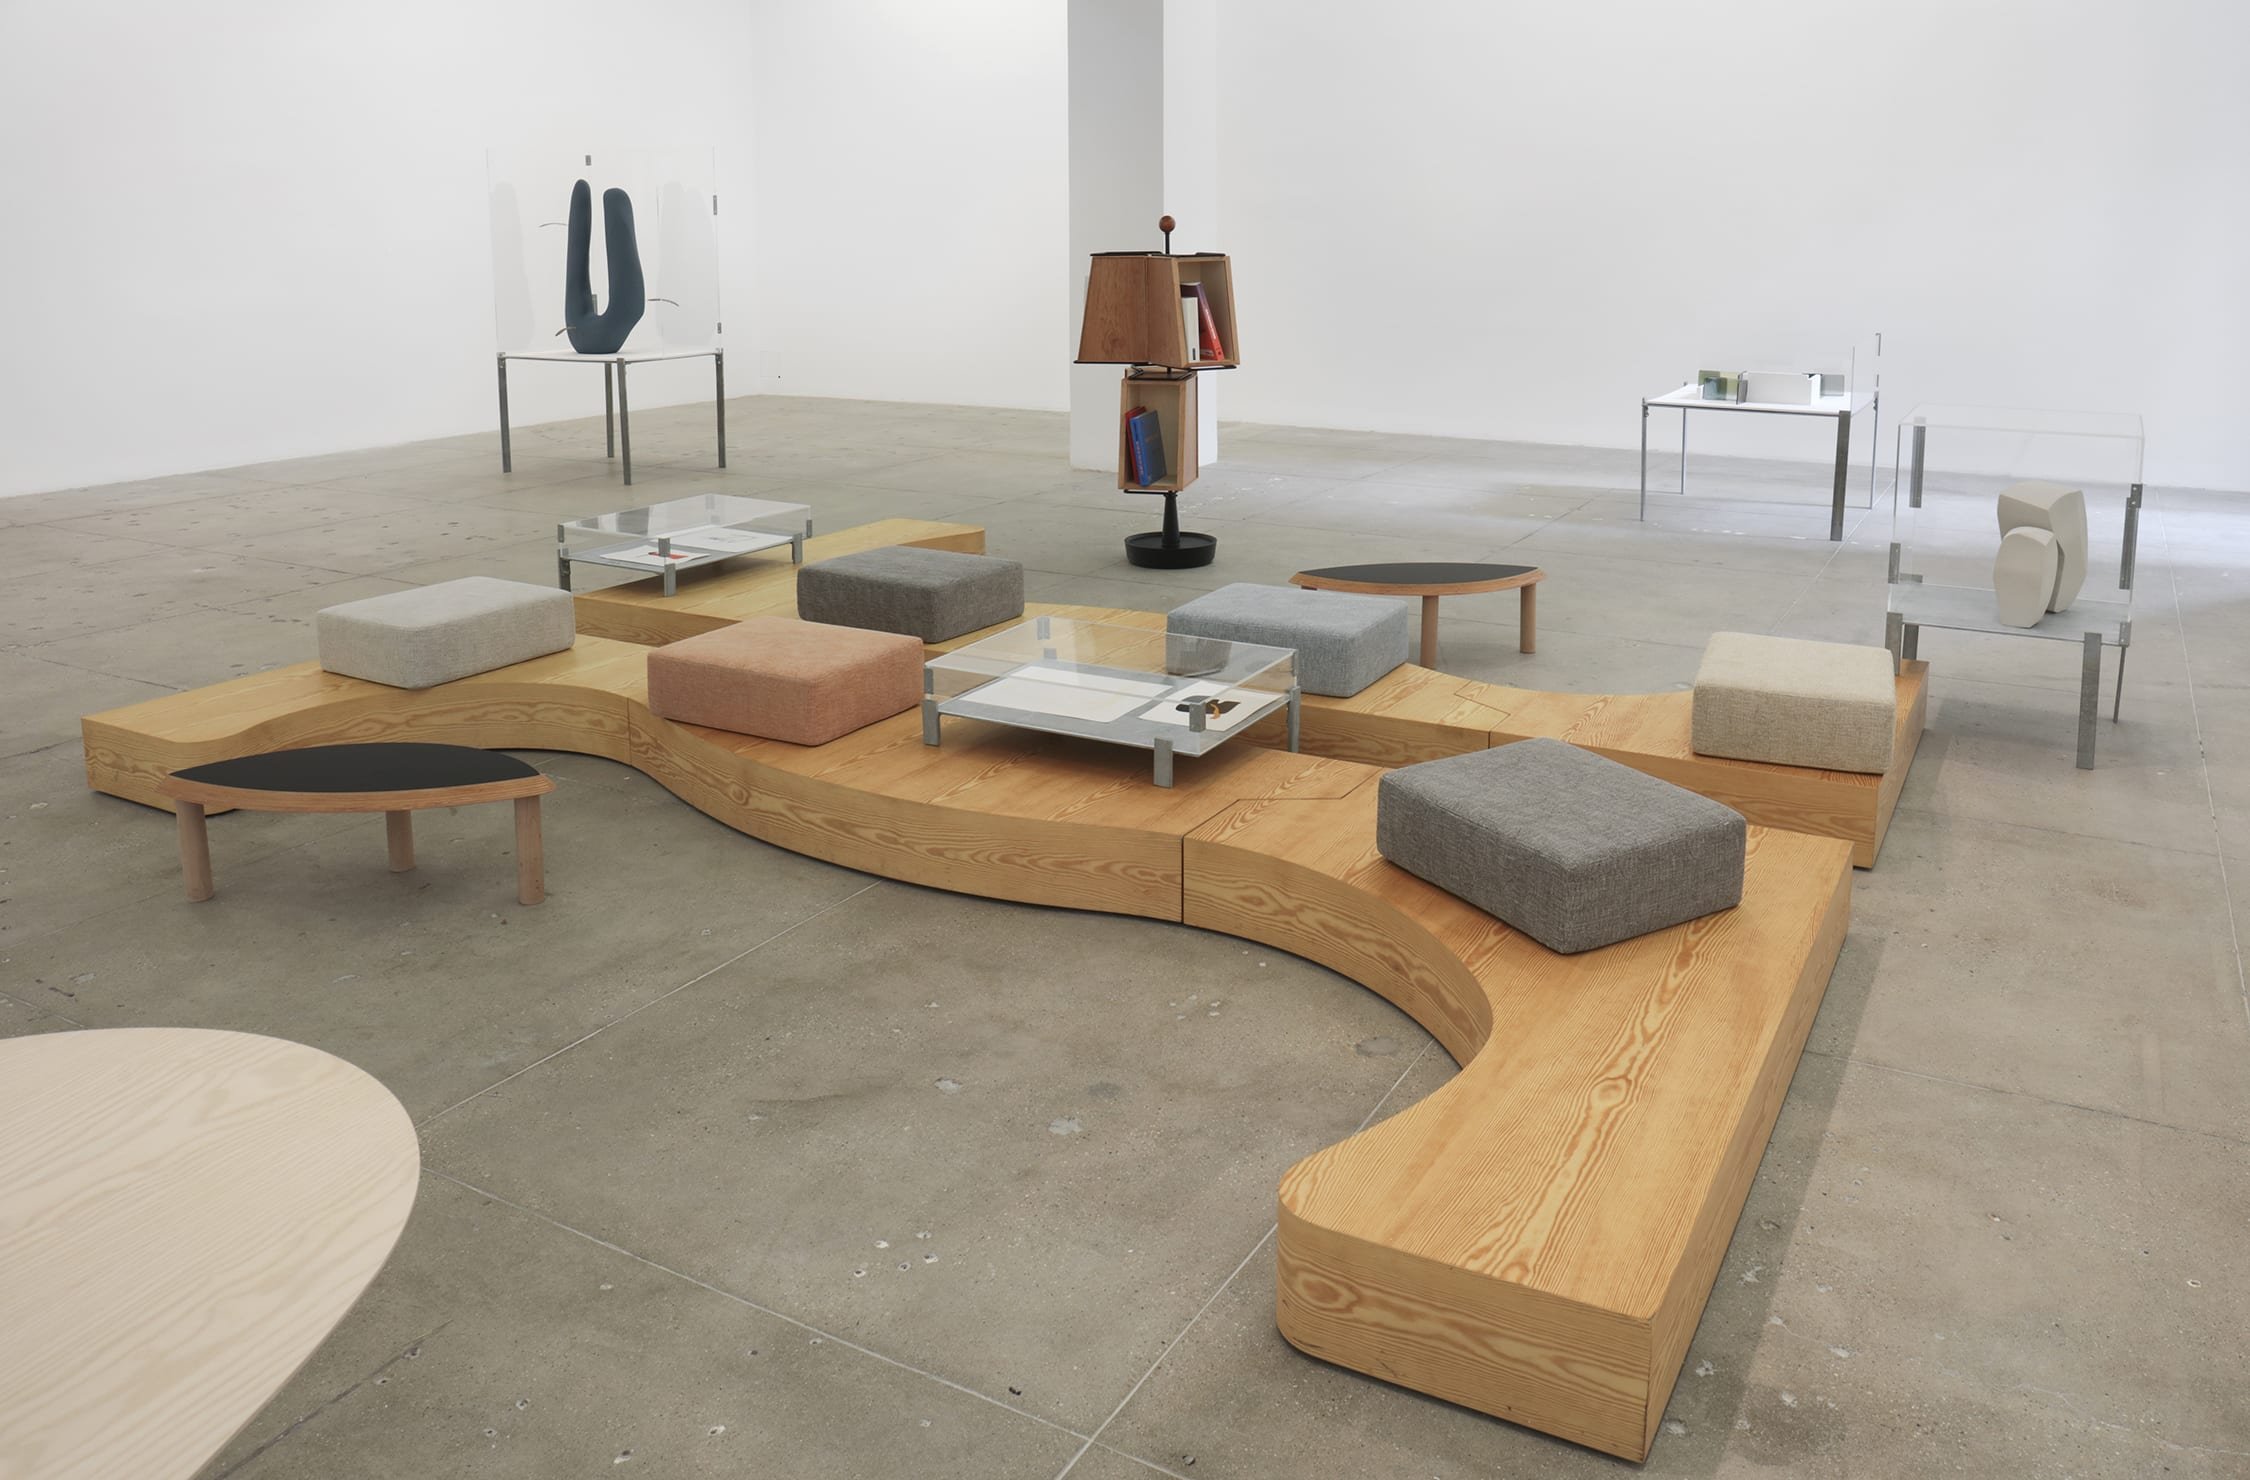 An installation view of sculptures, custom furniture and cushions in a white gallery space.